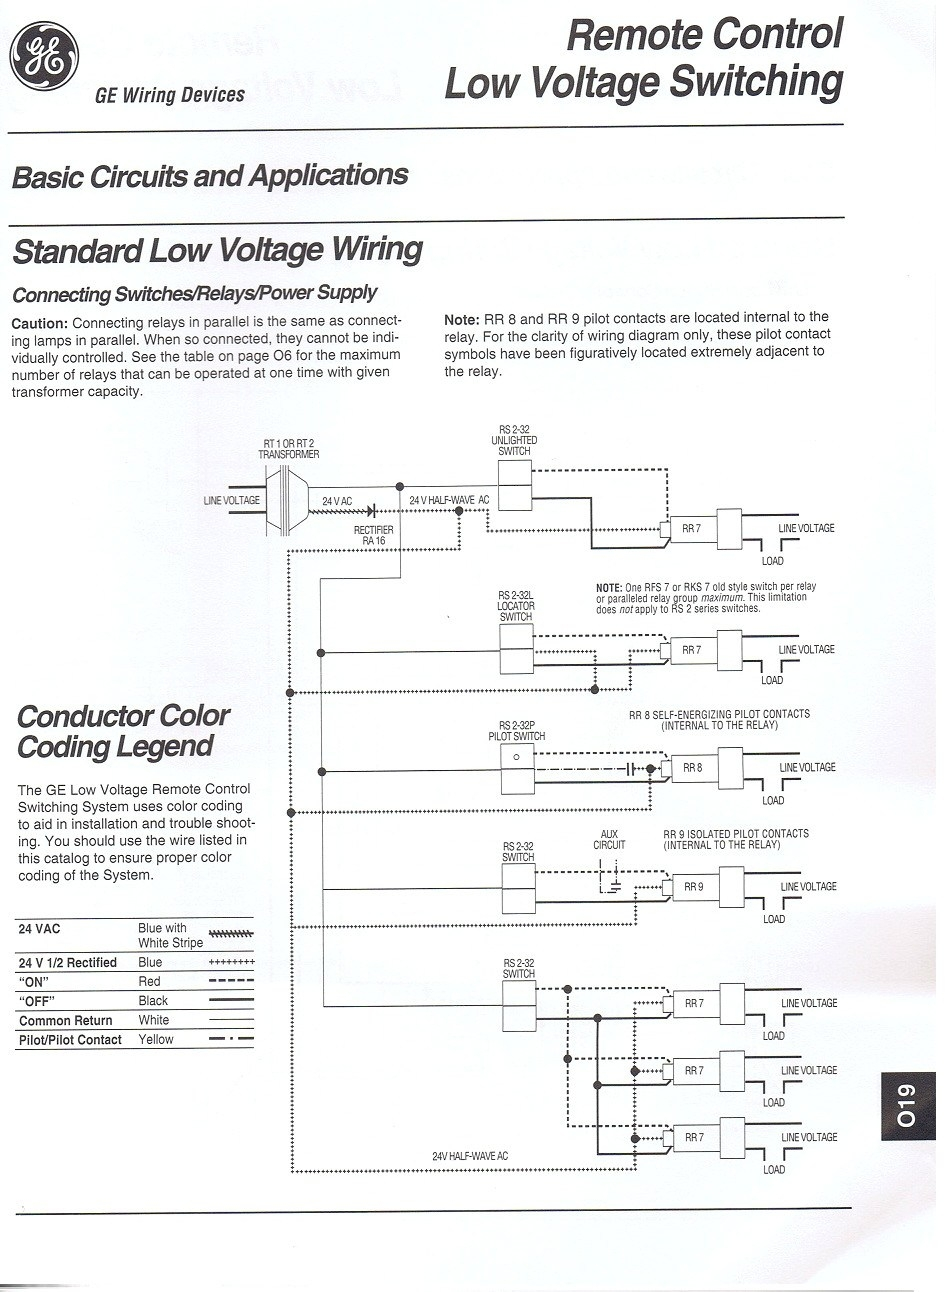 ge rr9 relay wiring diagram Collection-Ge Rr8 Relay Wiring Diagram Free Wiring Diagram Ge Rr8 Relay Wiring Diagram Wiring Diagrams 7-f